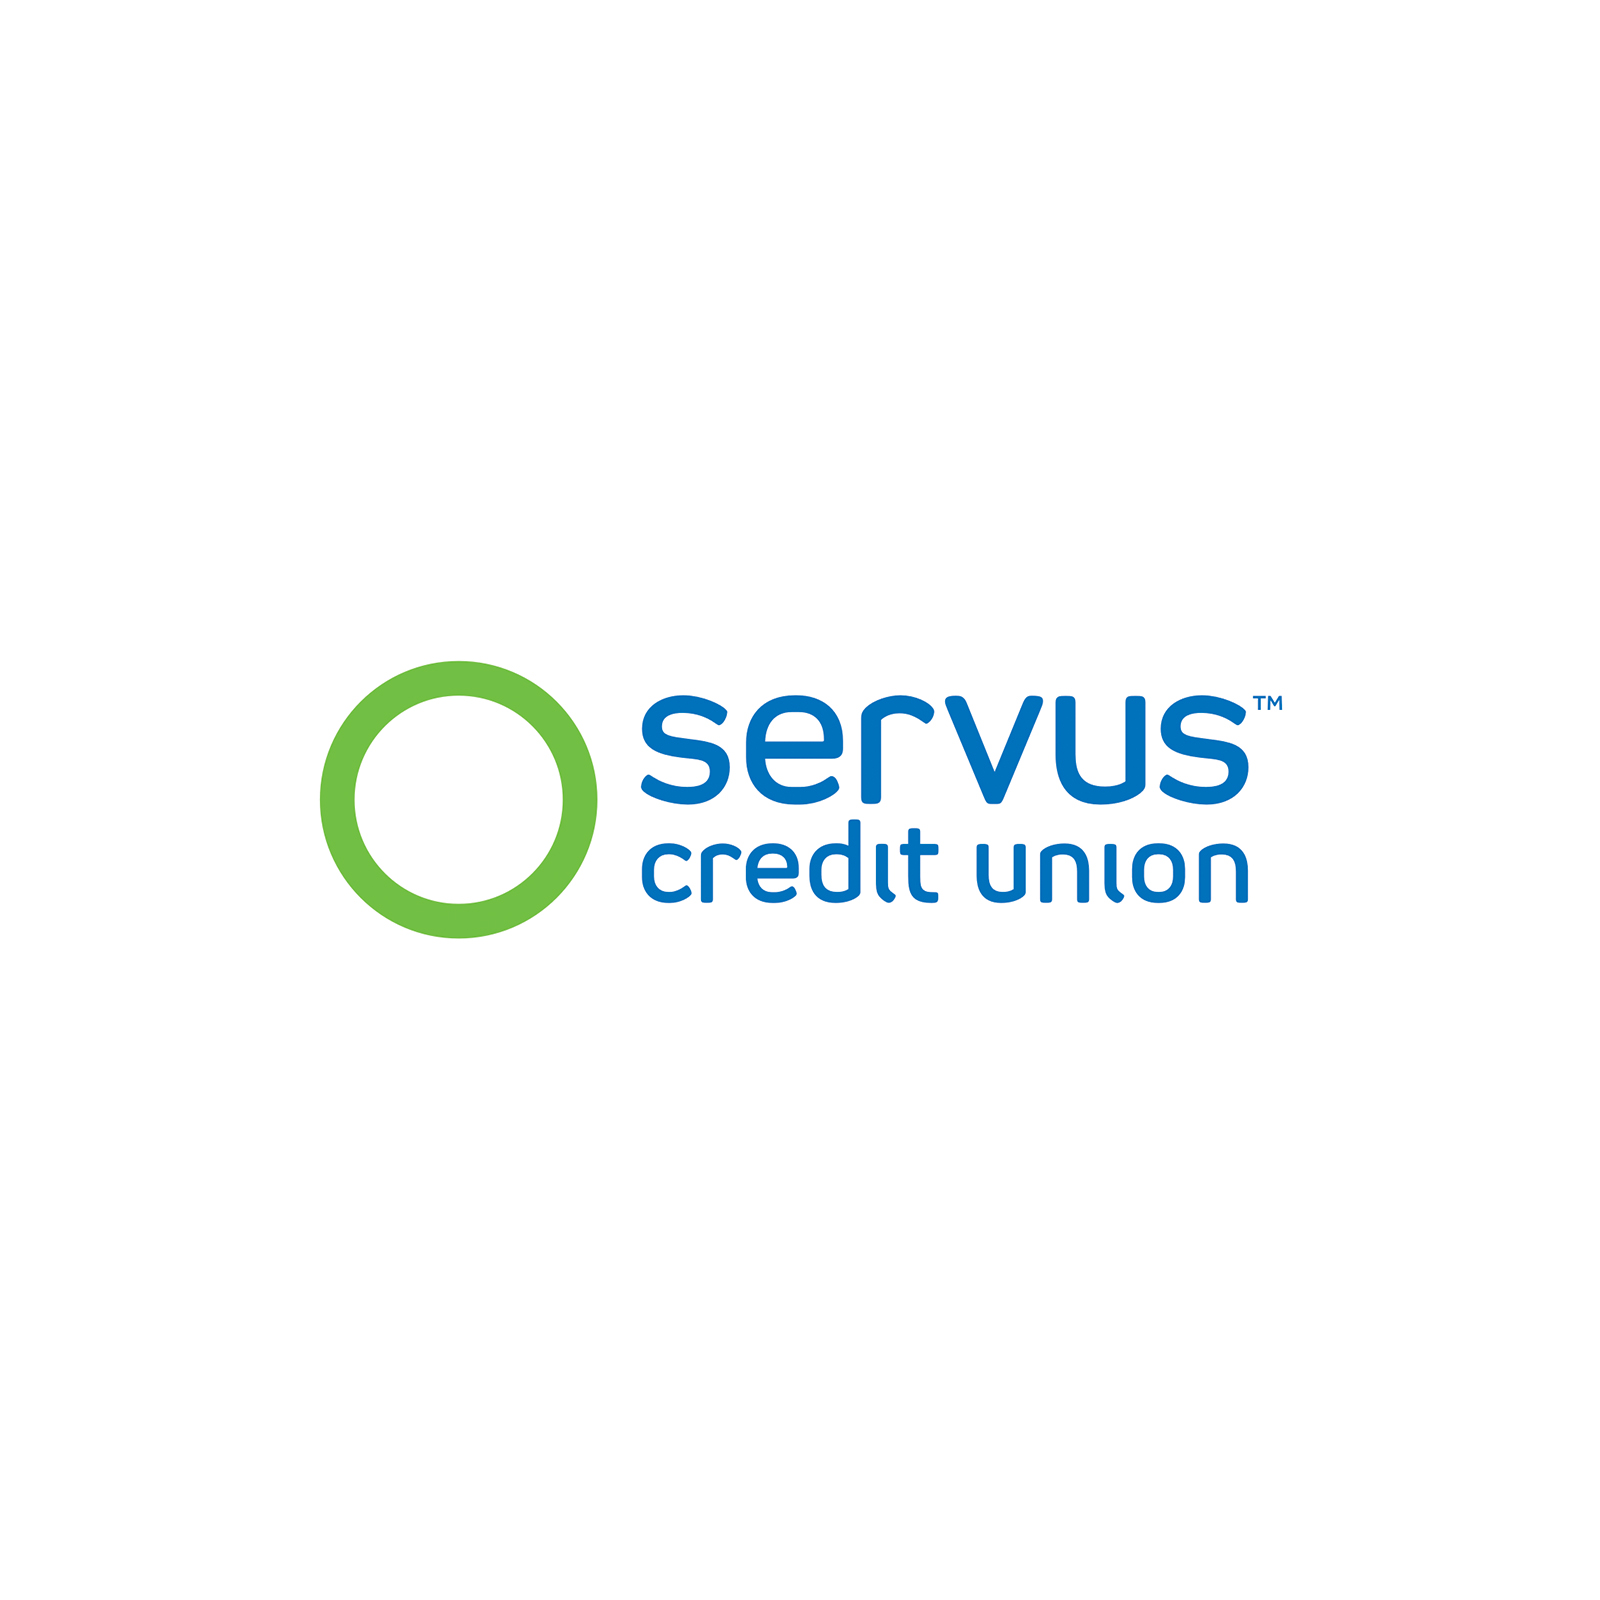 Servus Credit Union logo - written in blue with a green circle beside the text.